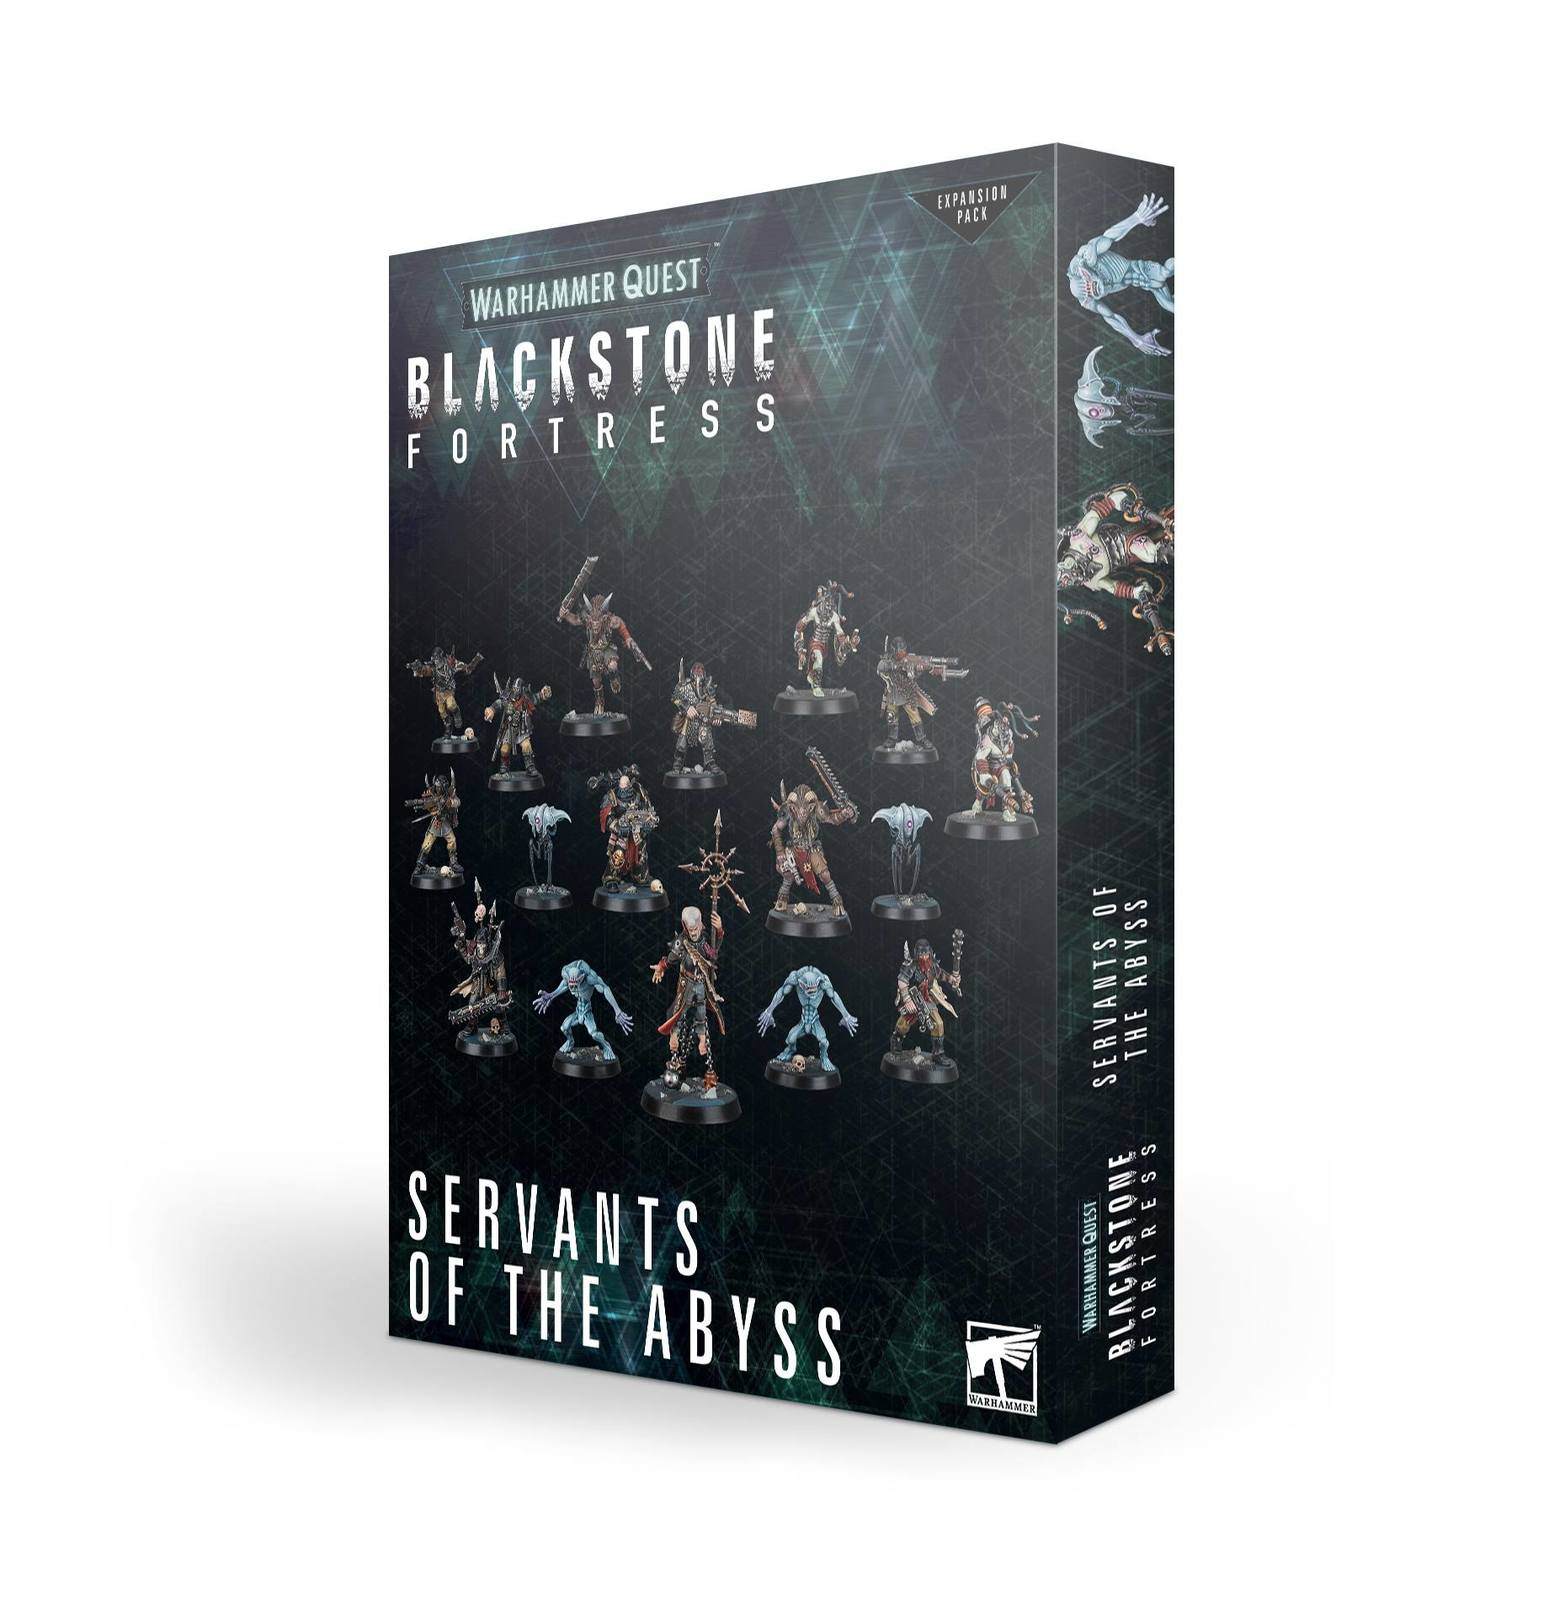 Blackstone Fortress: Servants of the Abyss image